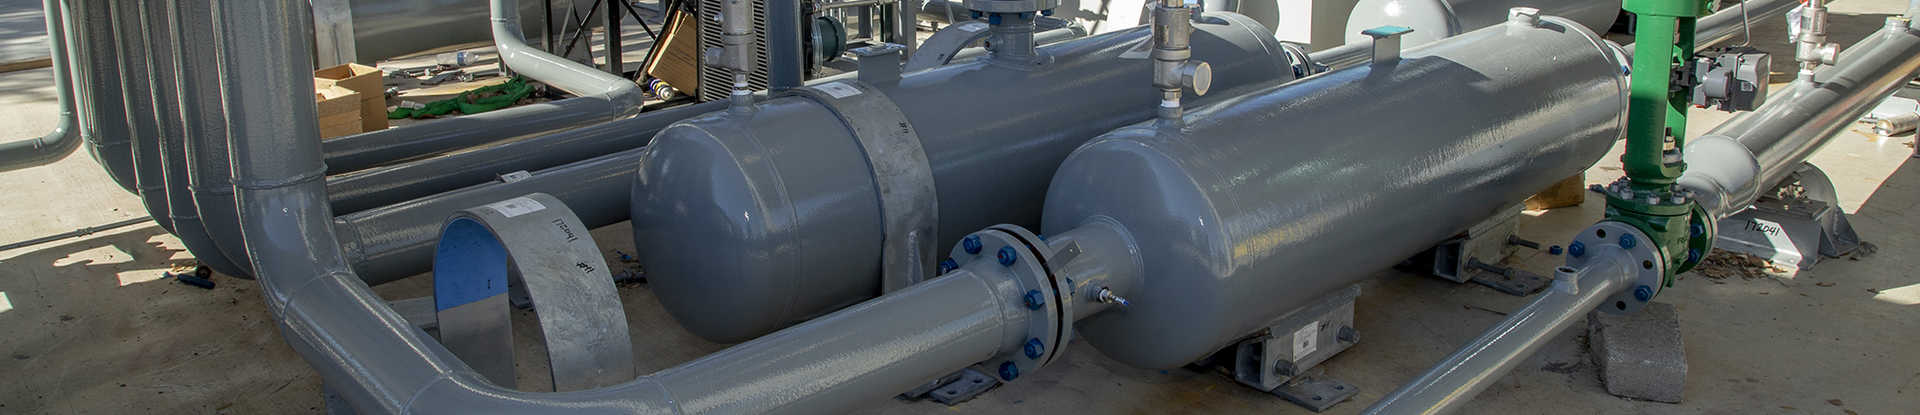 Press Release-SwRI acquires new flow loop for testing, methane emissions reduction project